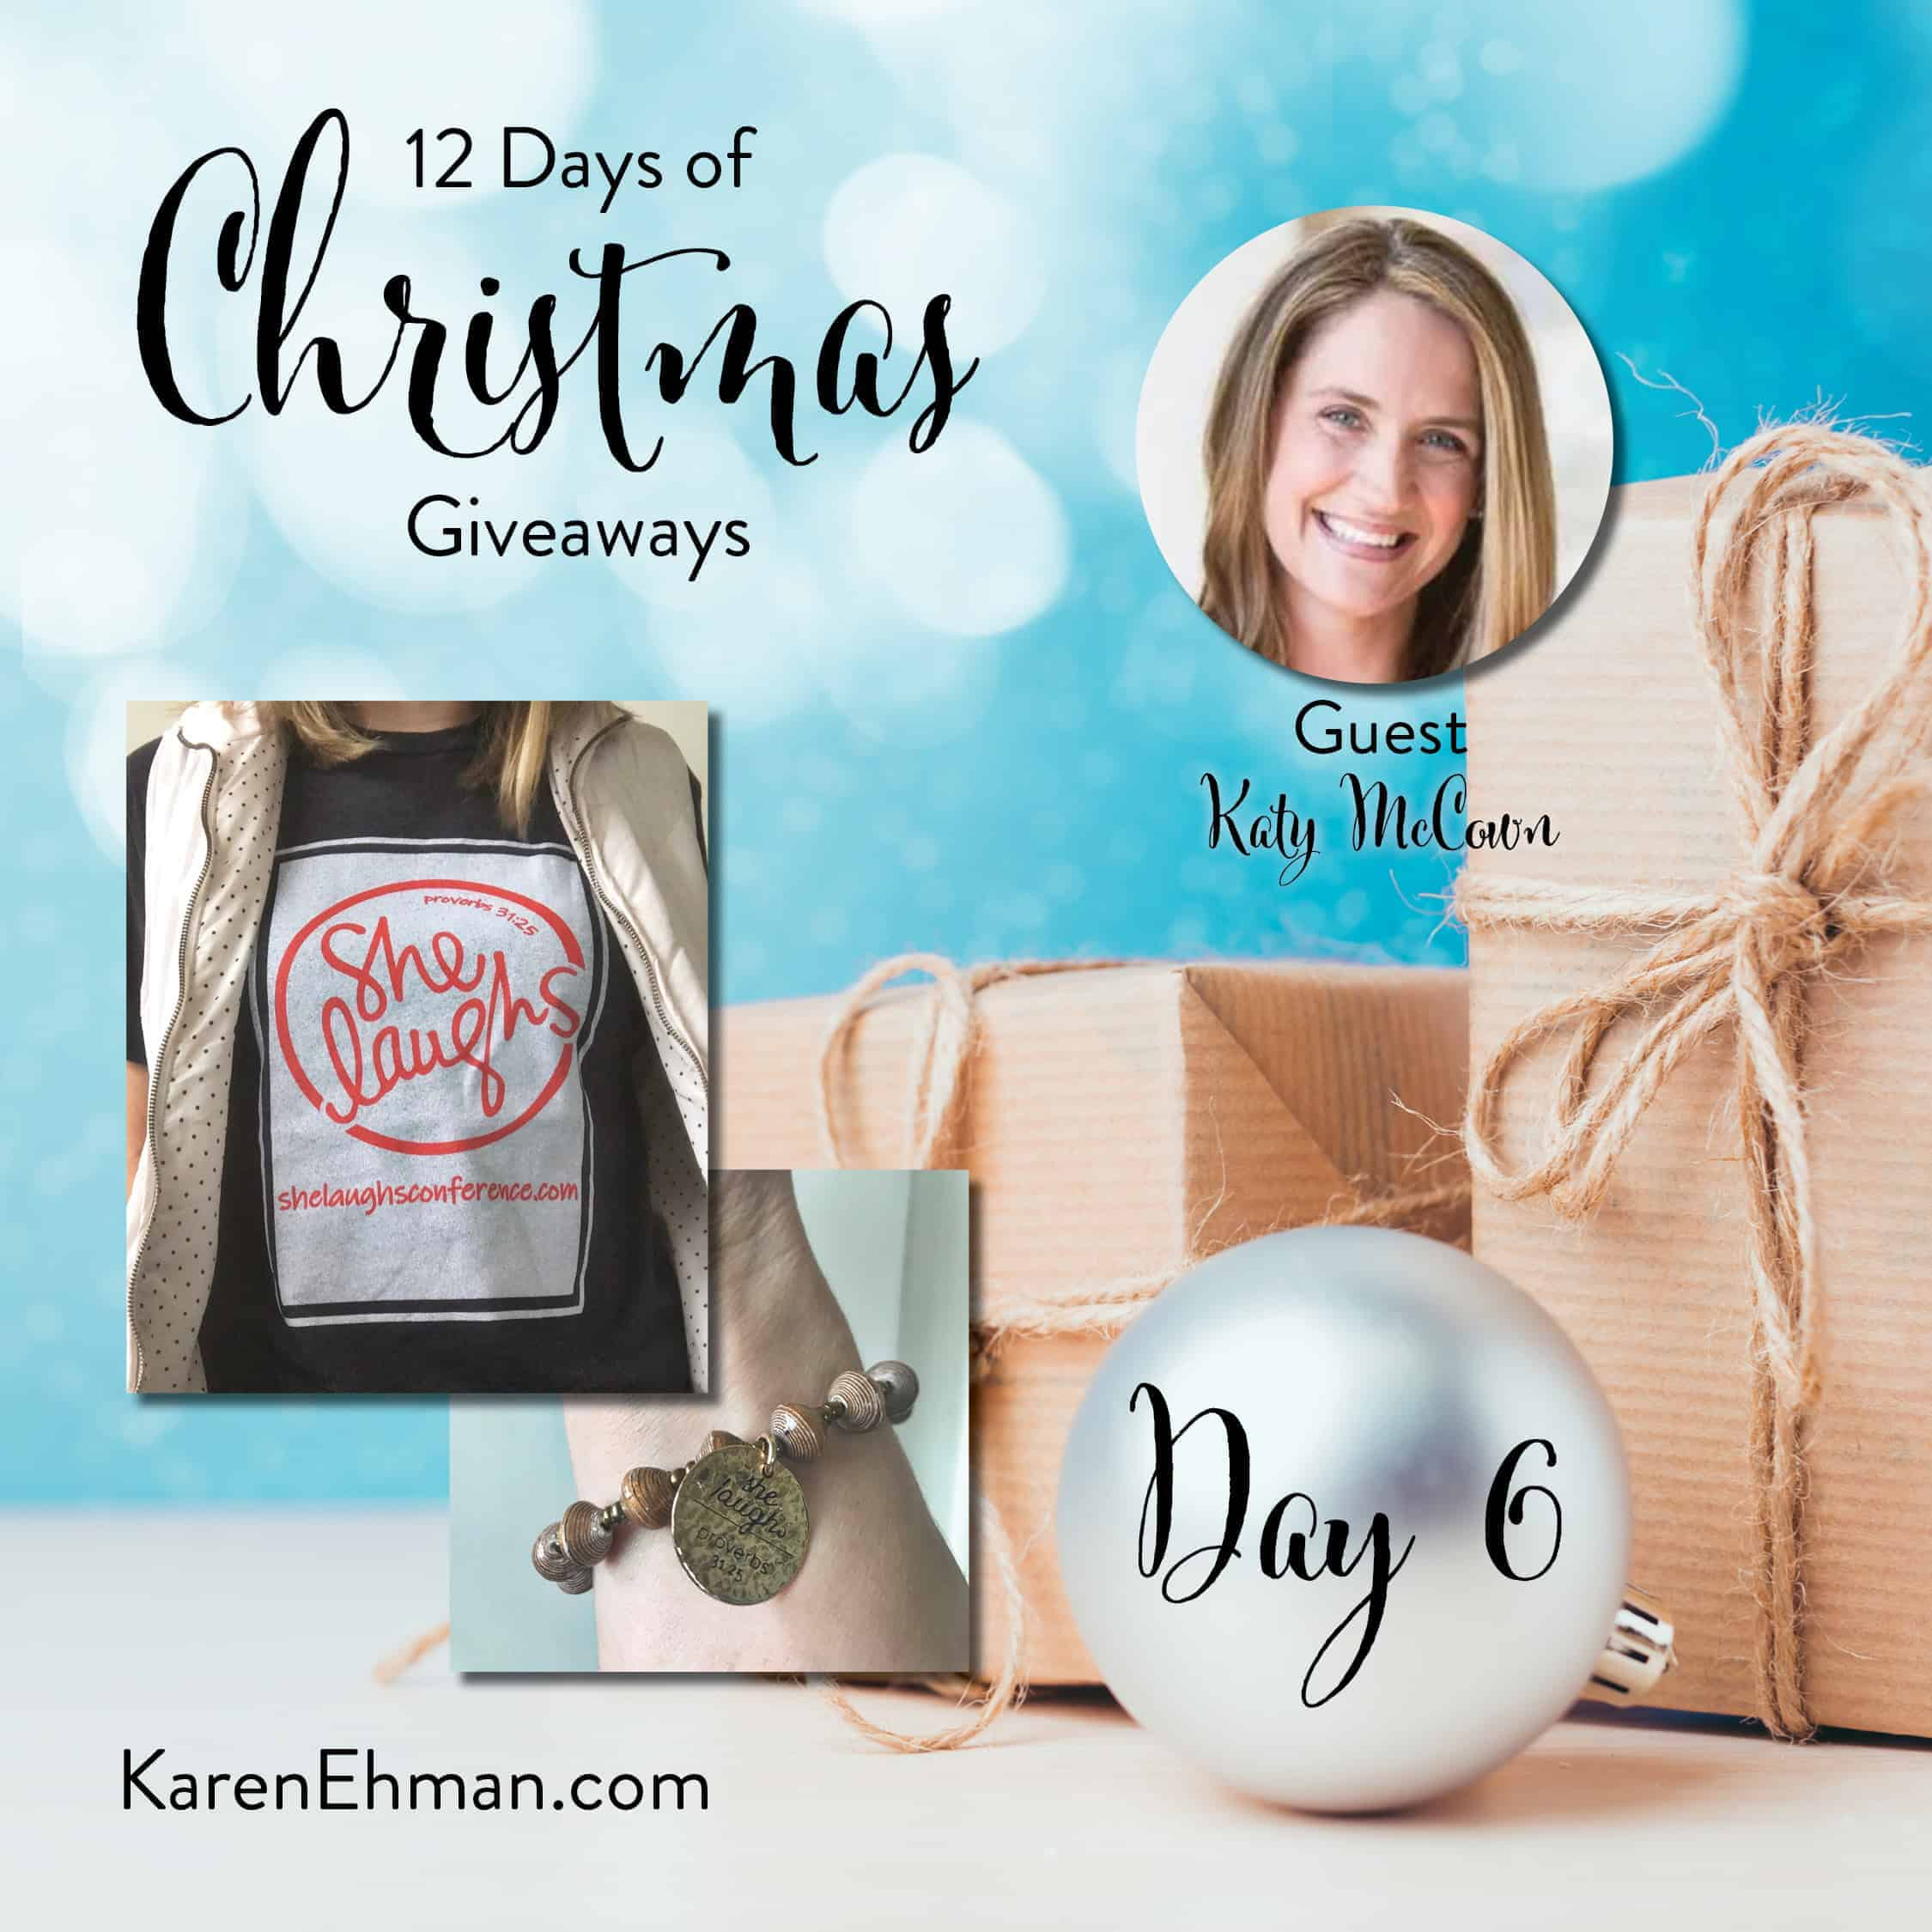 Day 6 of 12 Days of Christmas Giveaways (with Katy McCown)